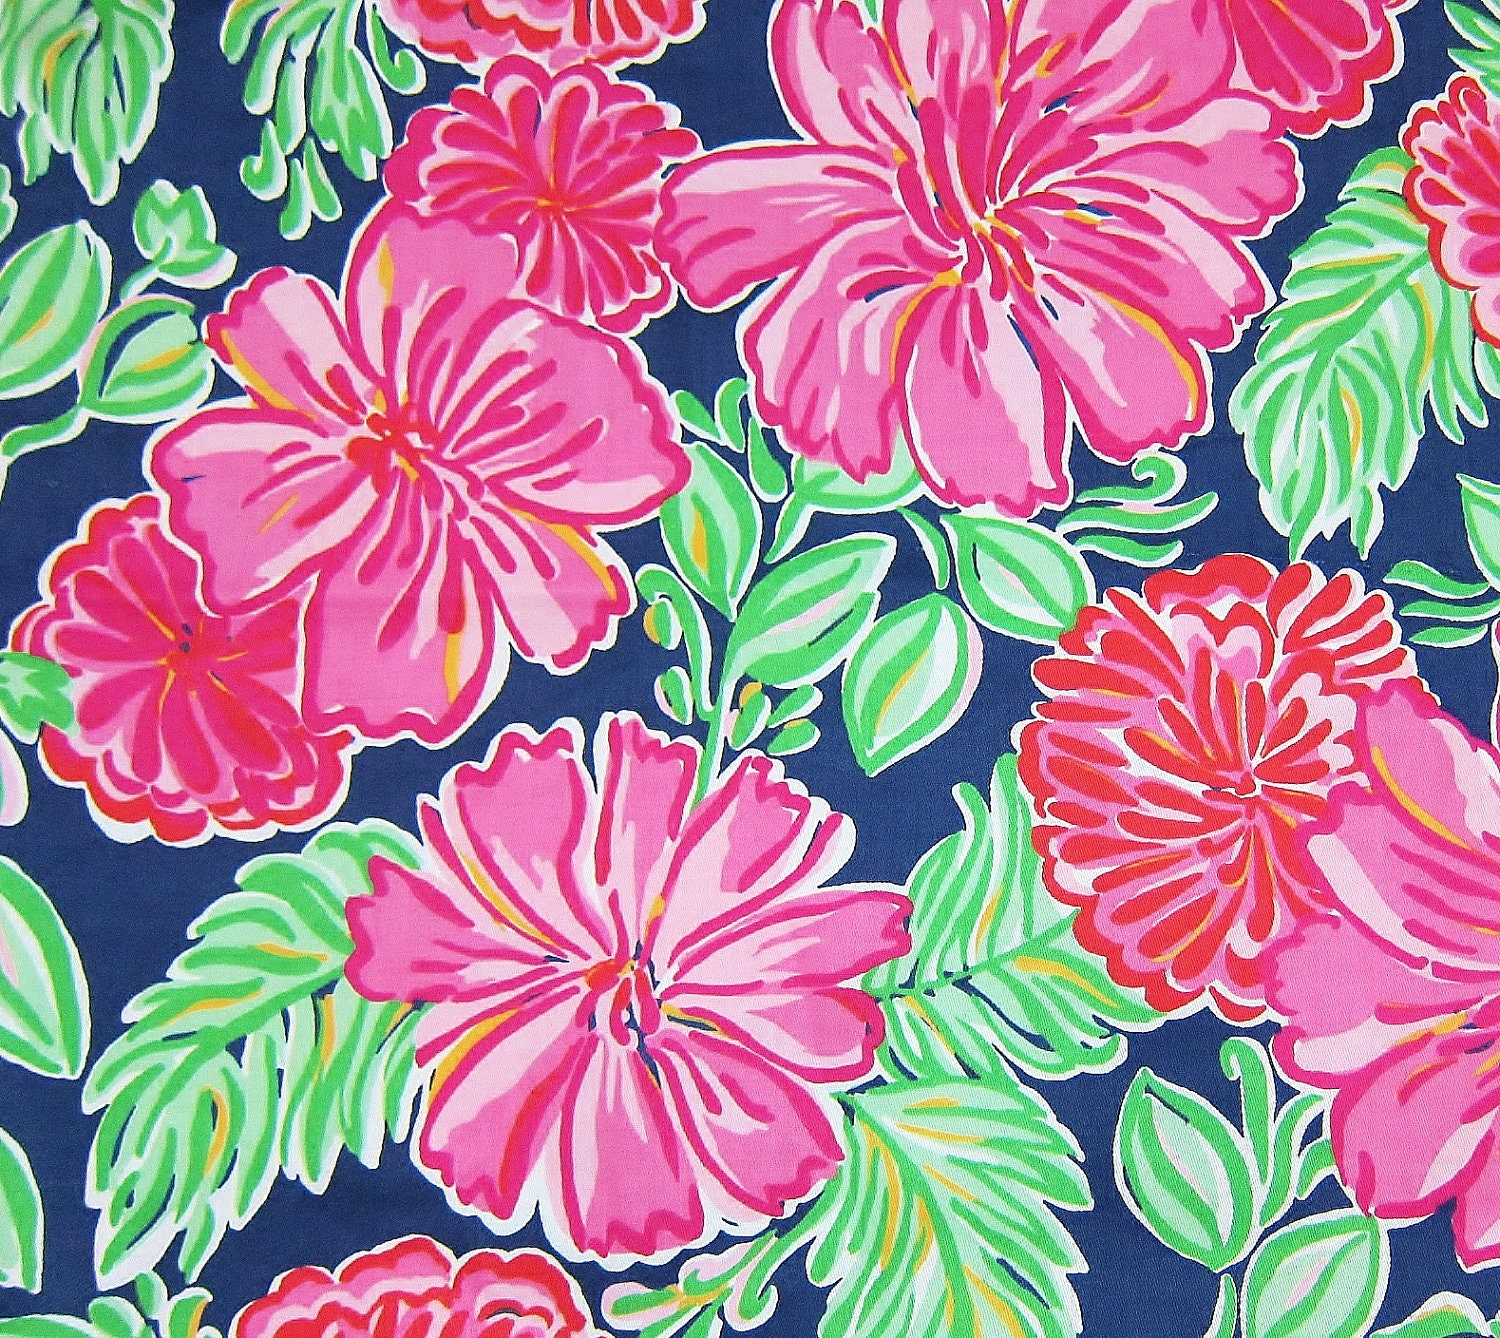 Authentic New Lilly Pulitzer Fabric 2011 Resort Bright Navy